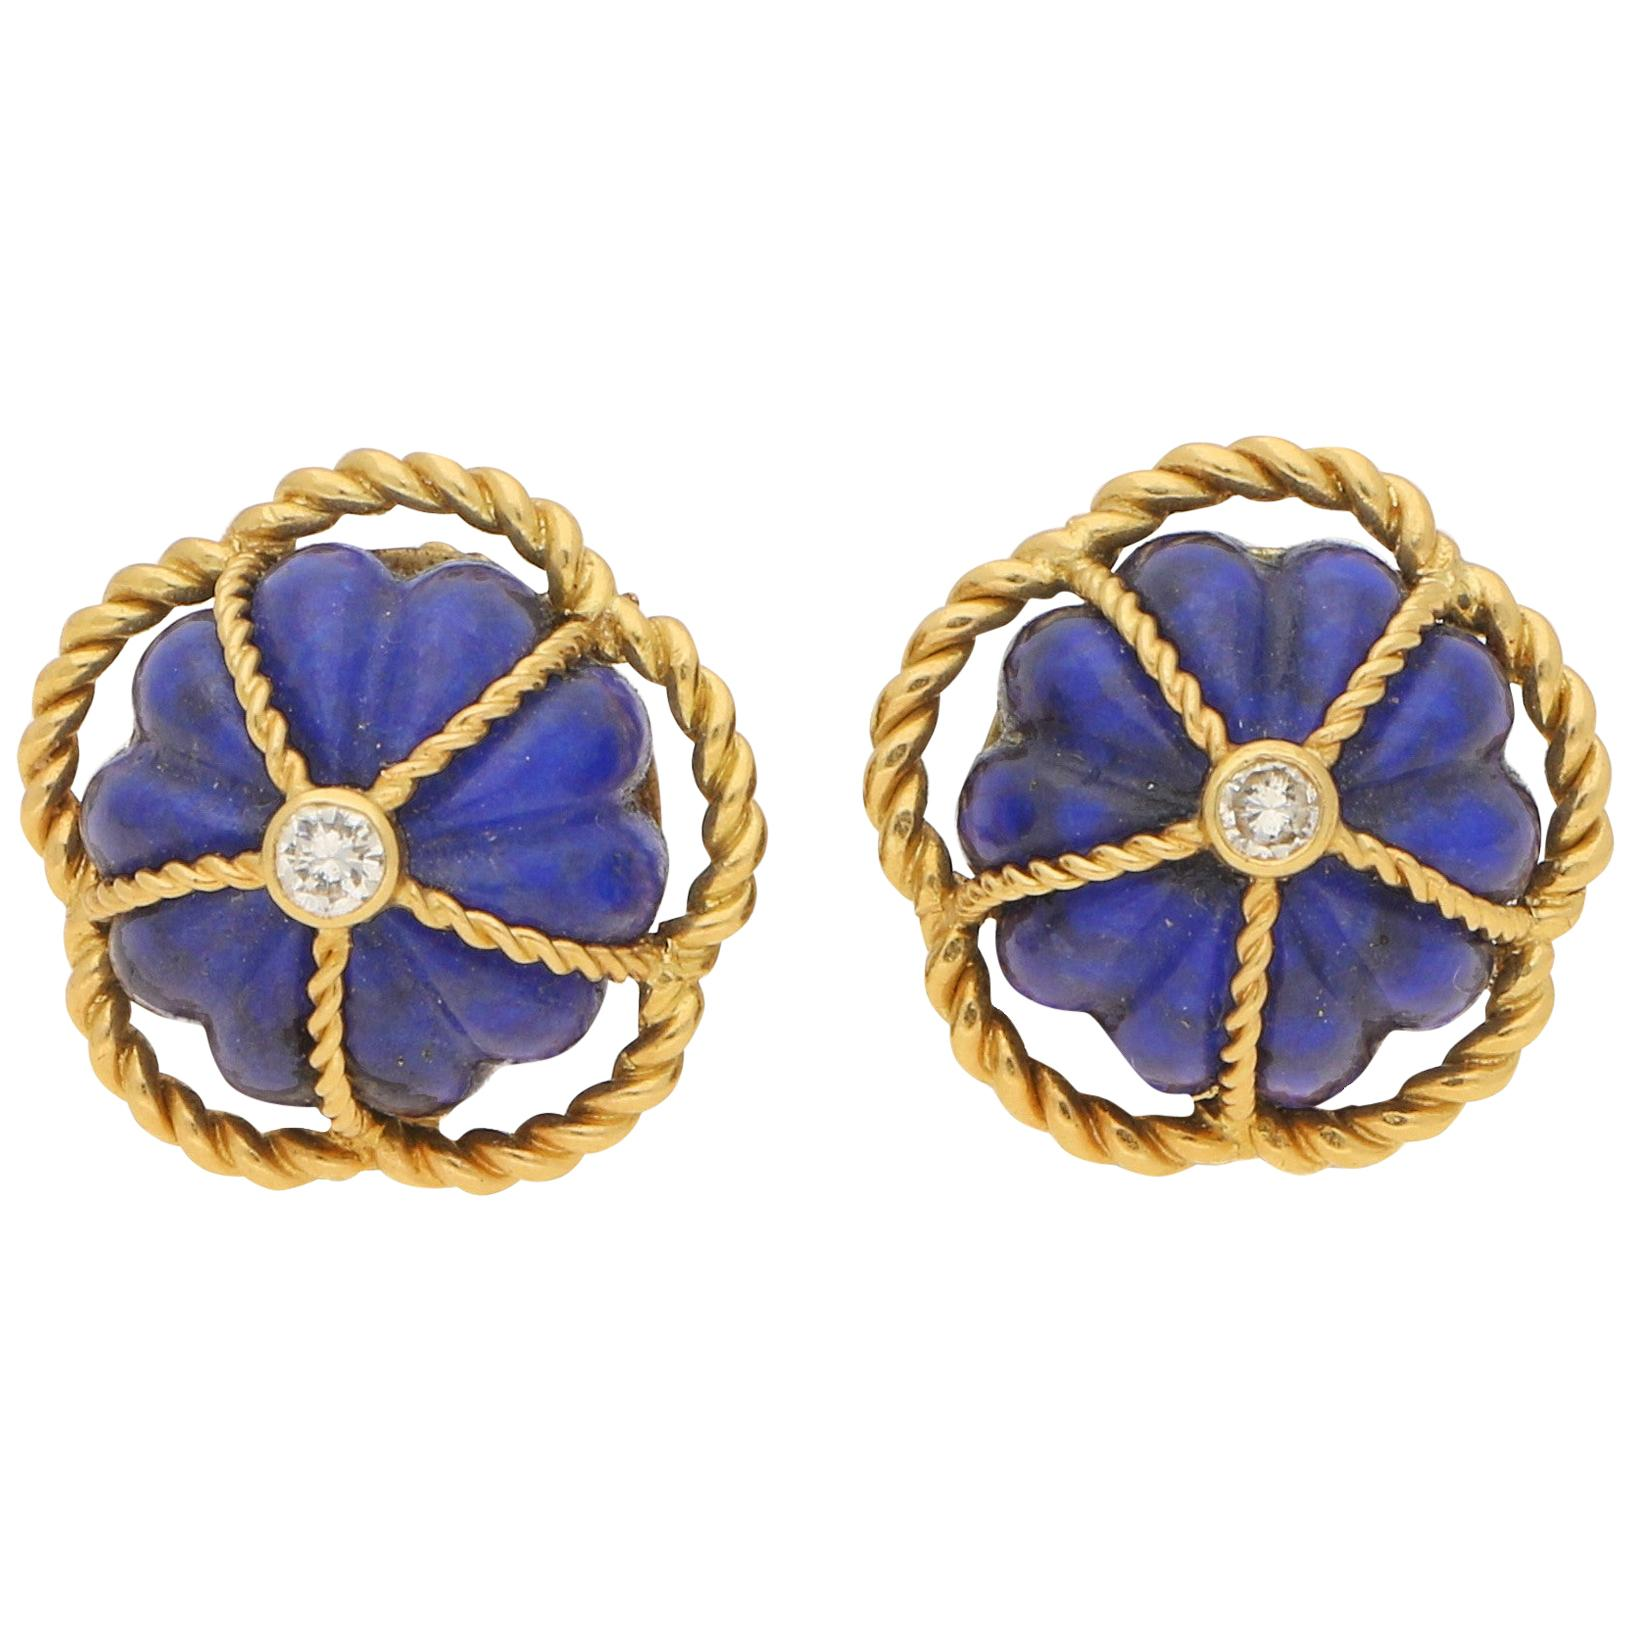 1970s Lapis Lazuli and Diamond Domed Clip-On Earrings in 18 Karat Yellow Gold